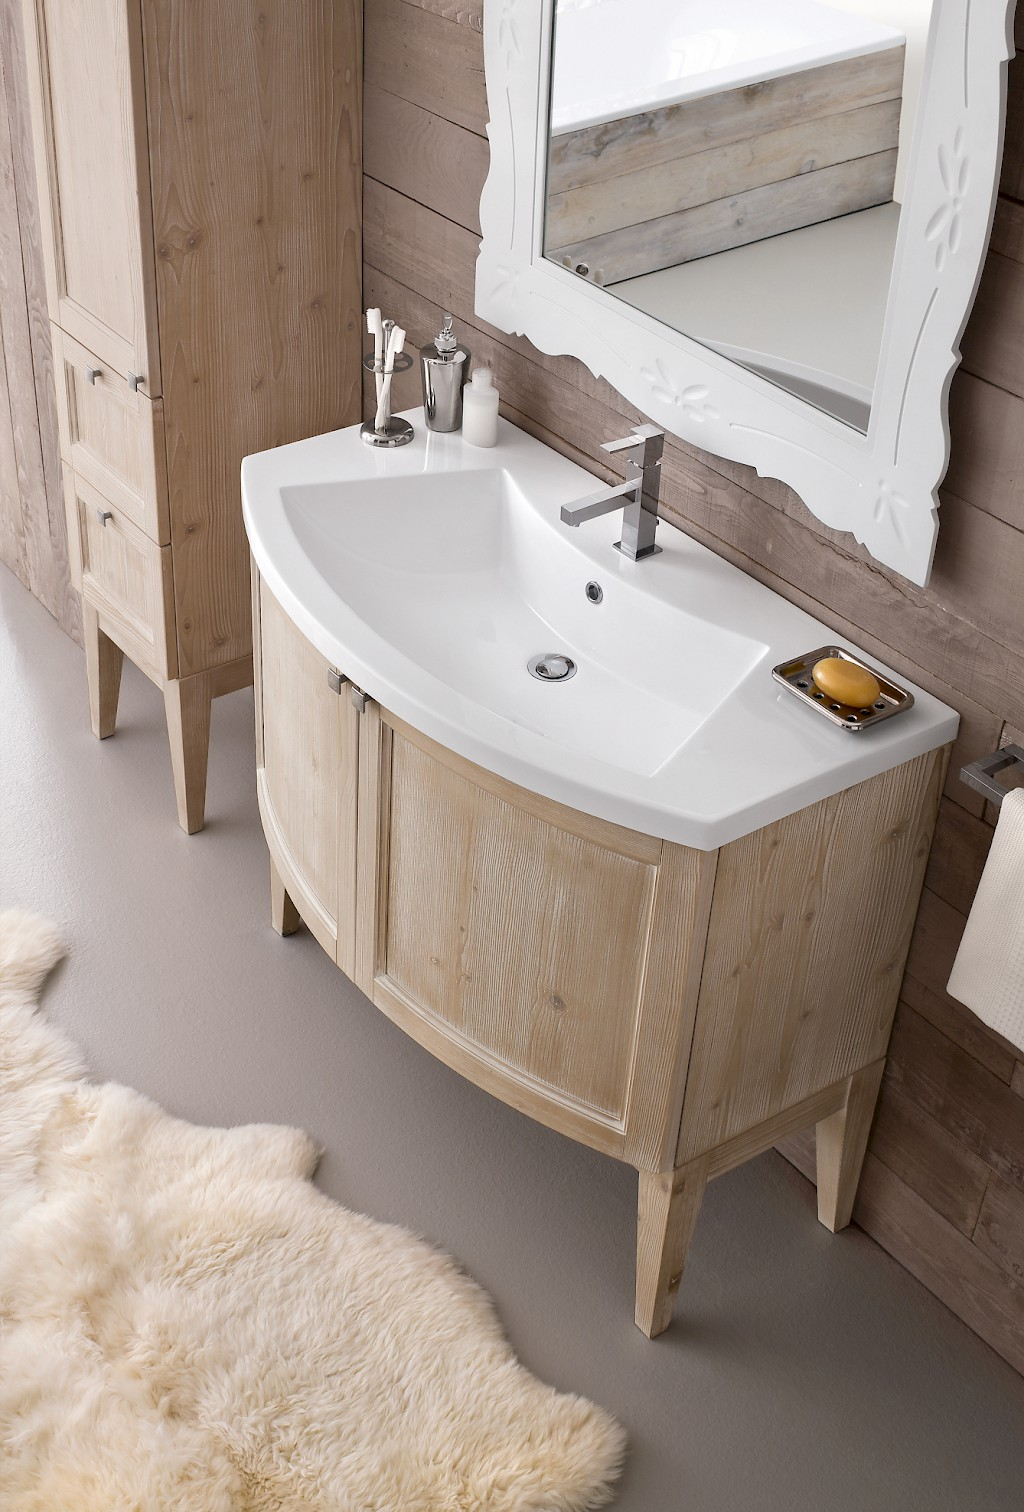 Diamante Dm6 Mobile Luxury Arredo Bagno L 96 35 X P 38